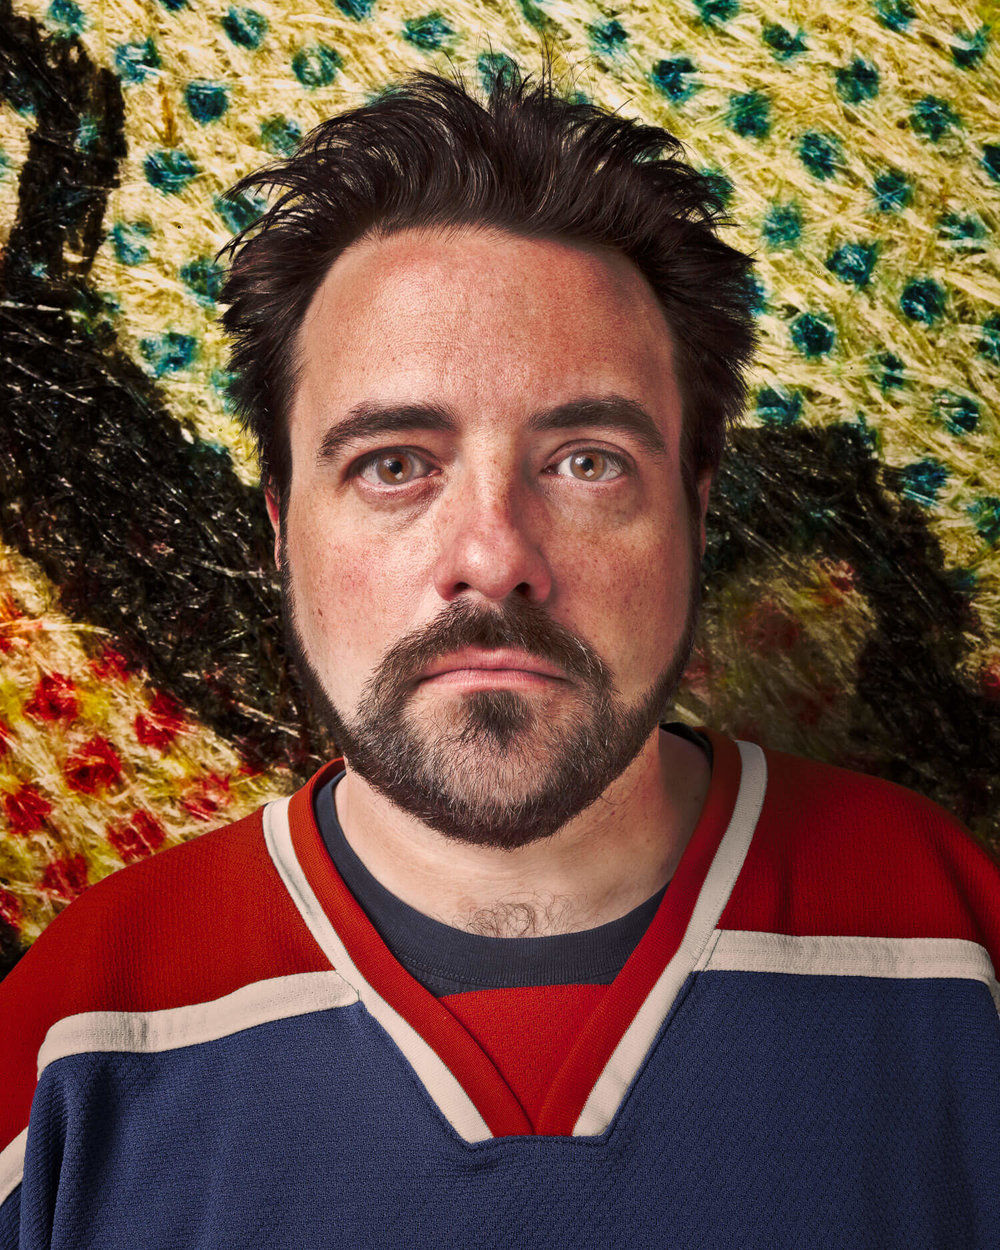 stp_kevin_smith_094.jpg